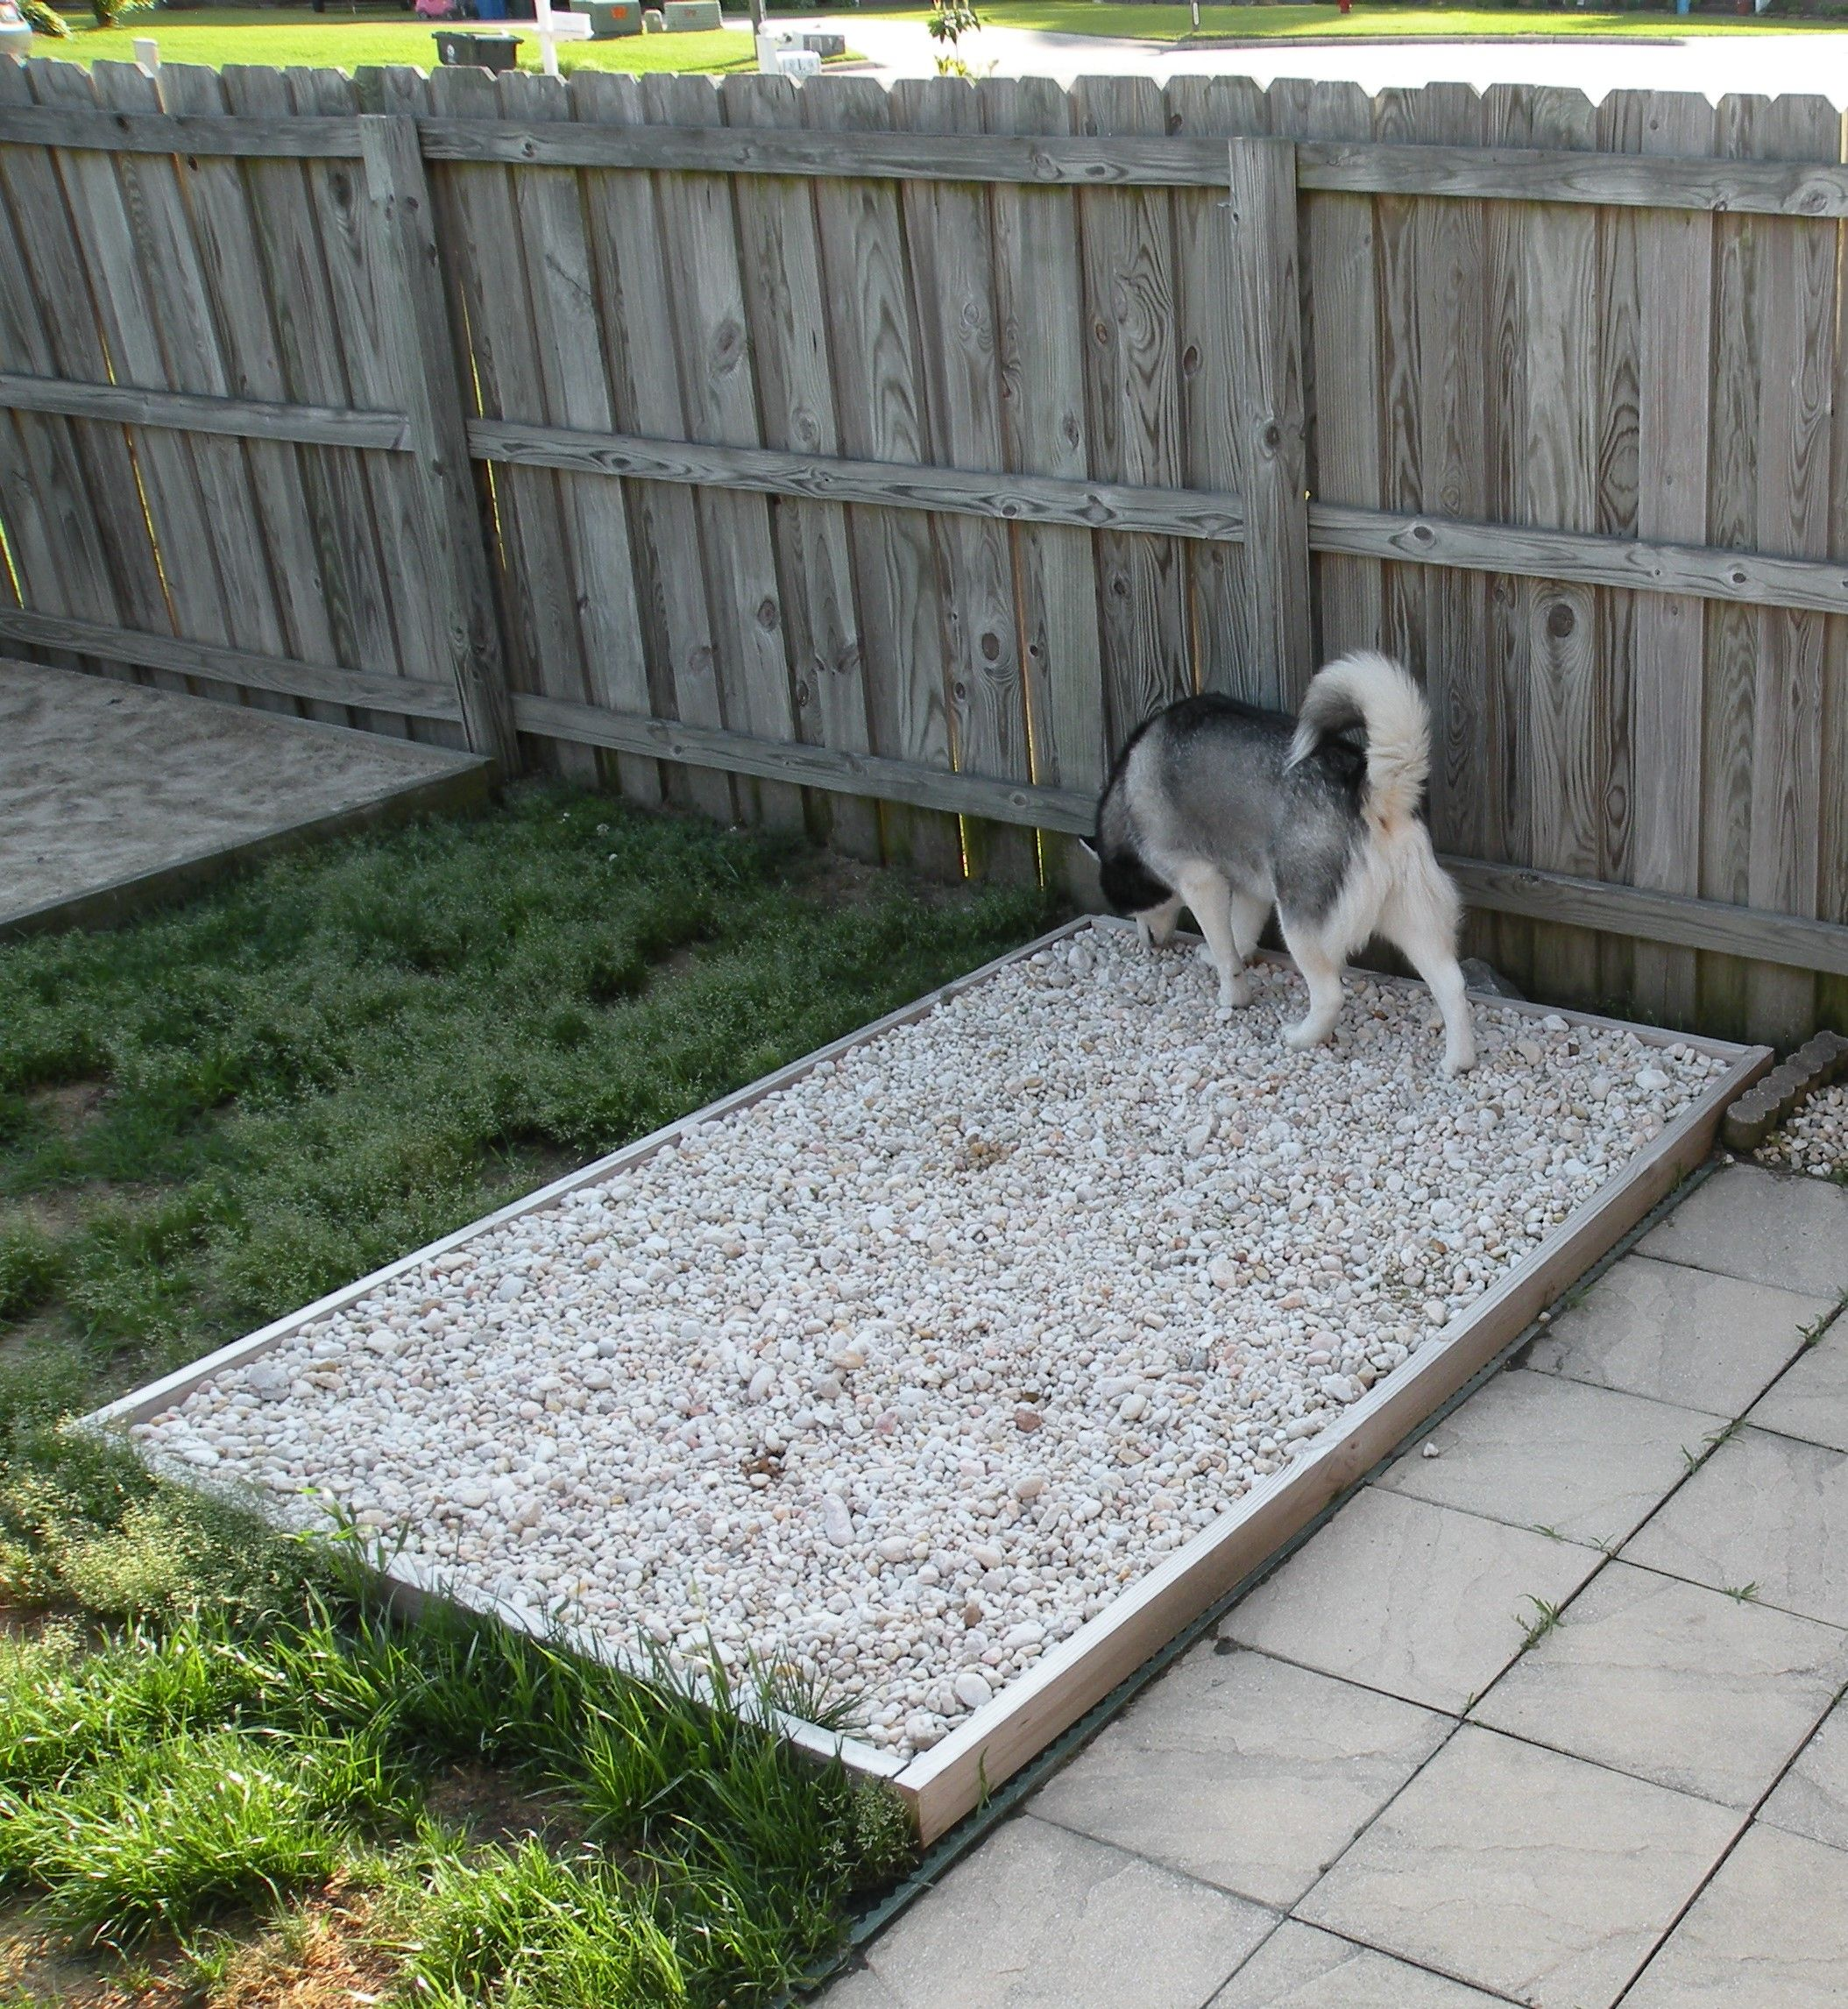 Outdoor Potty Rock Area For The Dogs. Has Underground Drain Pipe, Screen,  Sand, And River Rocks. Structure Right Off The Patio So They Donu0027t Have To  Get ...